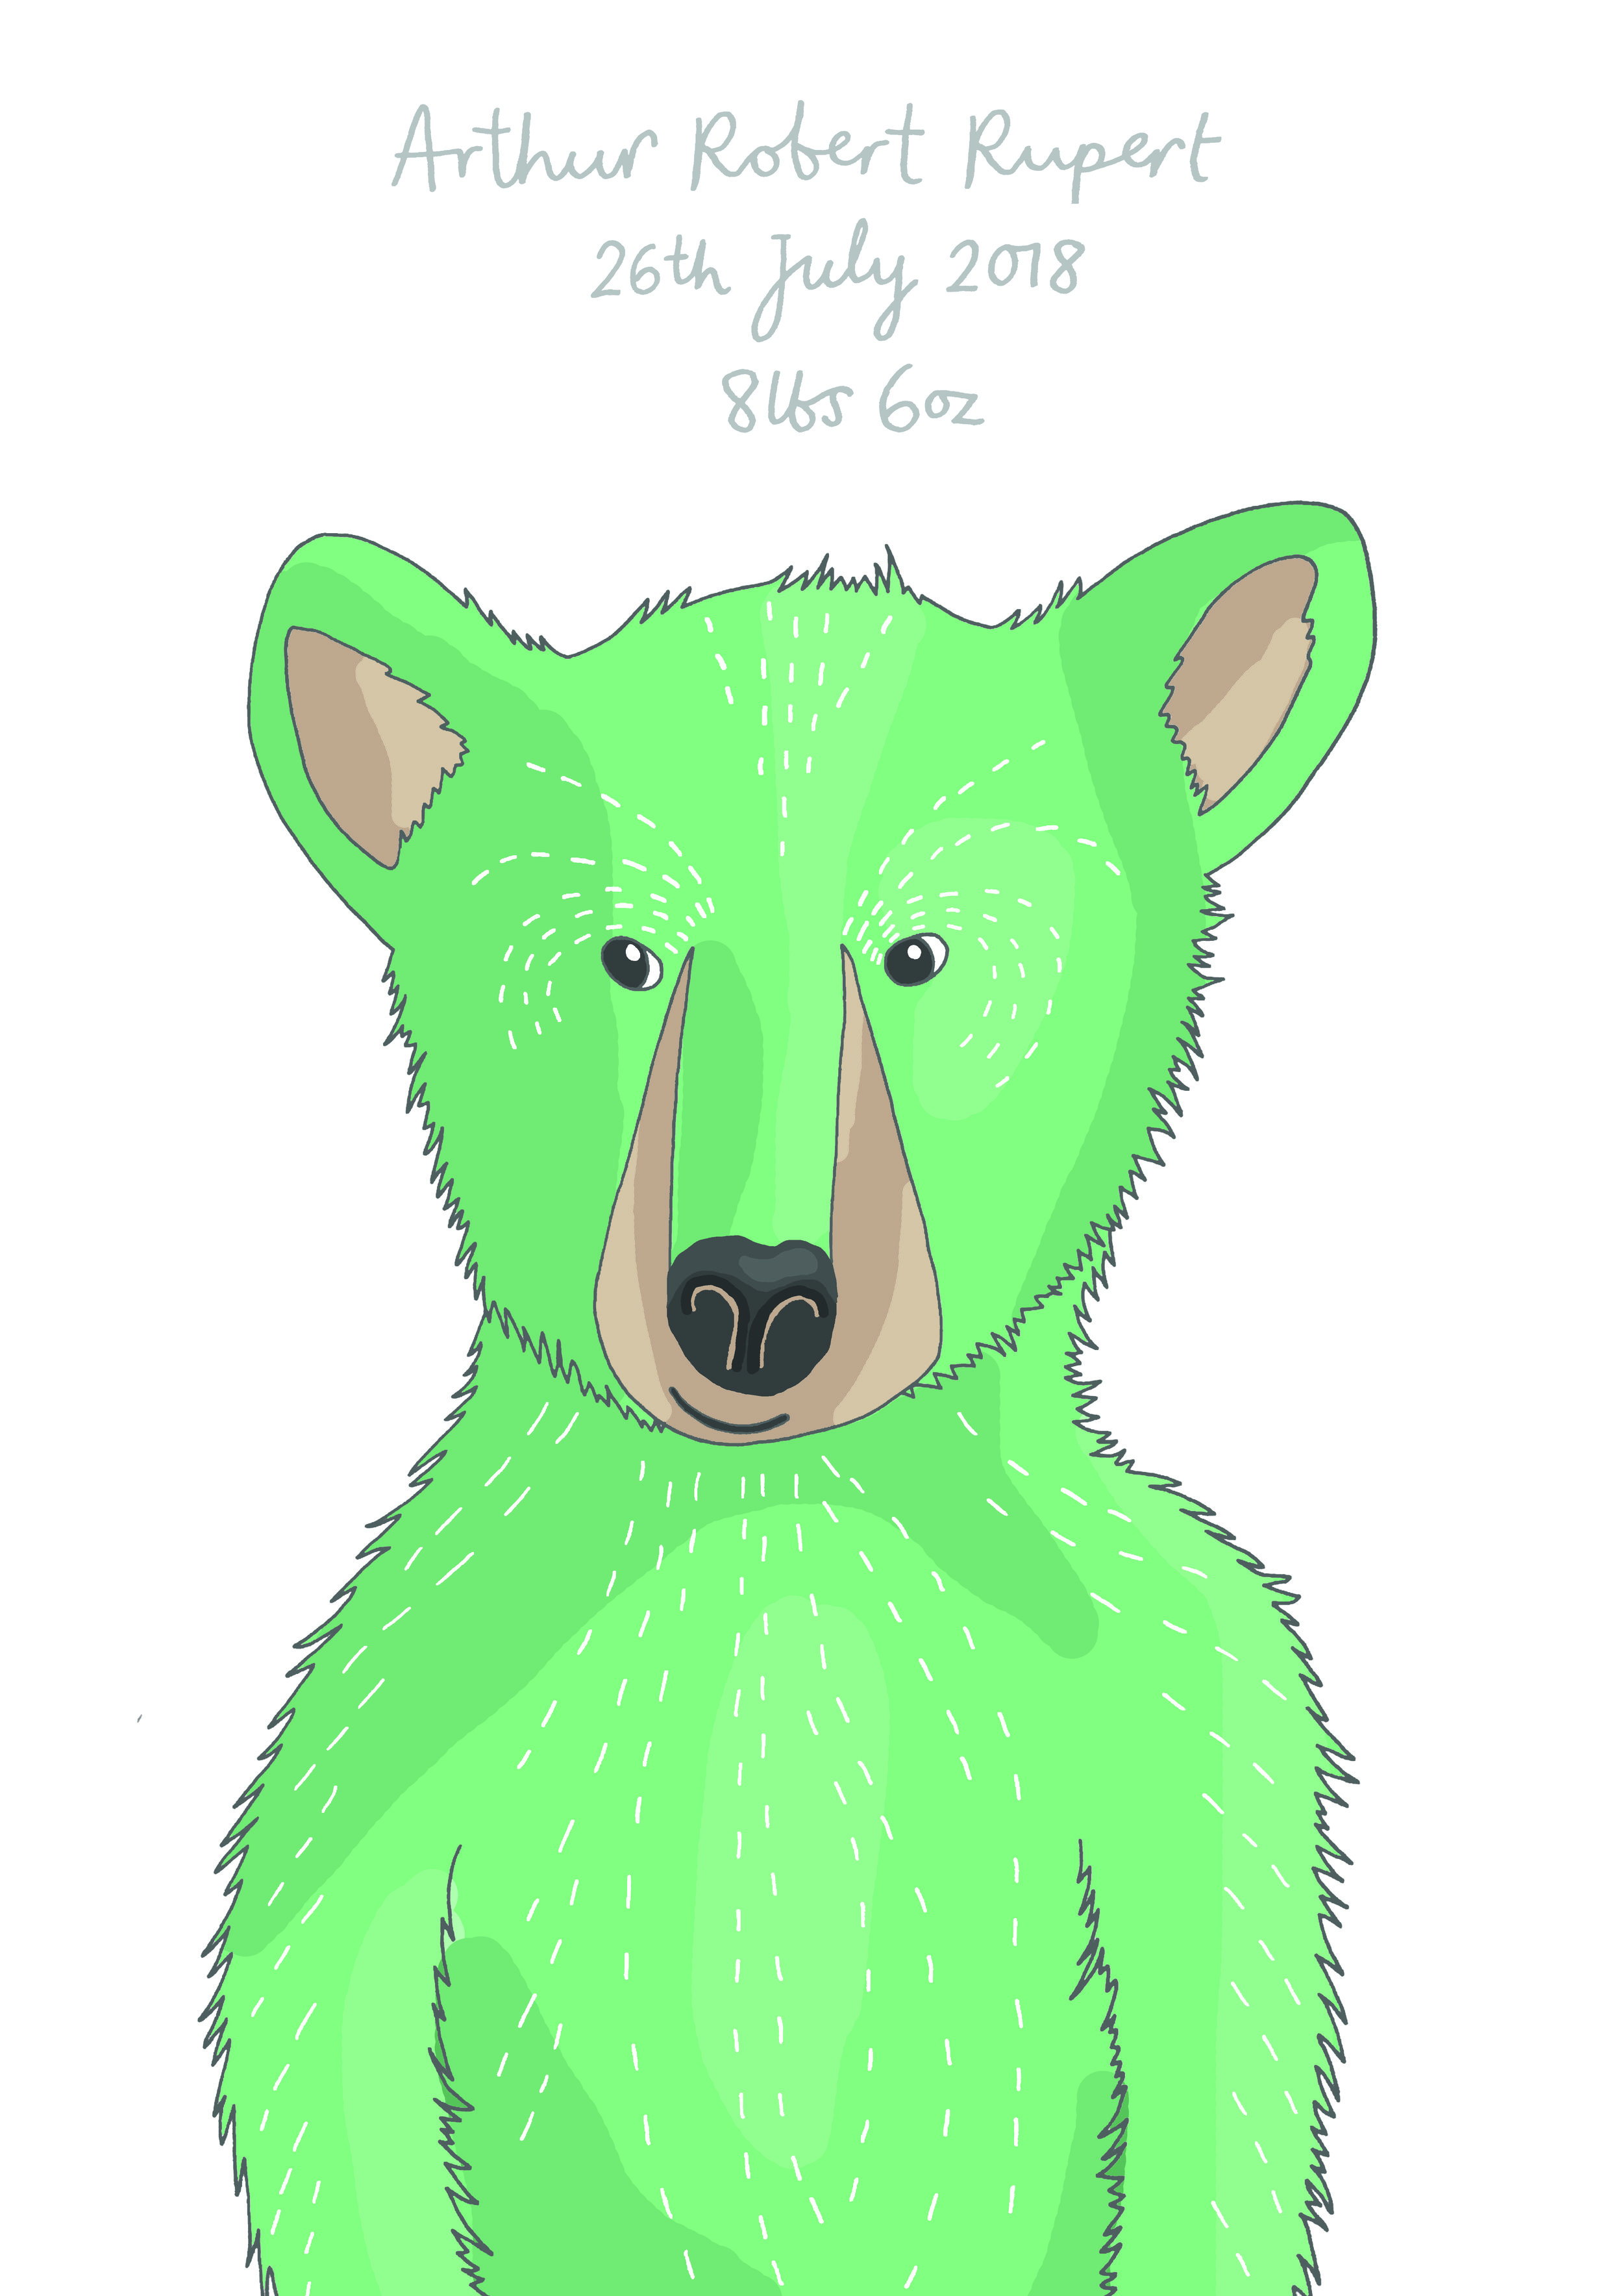 A baby bear drawn for baby Arthur.